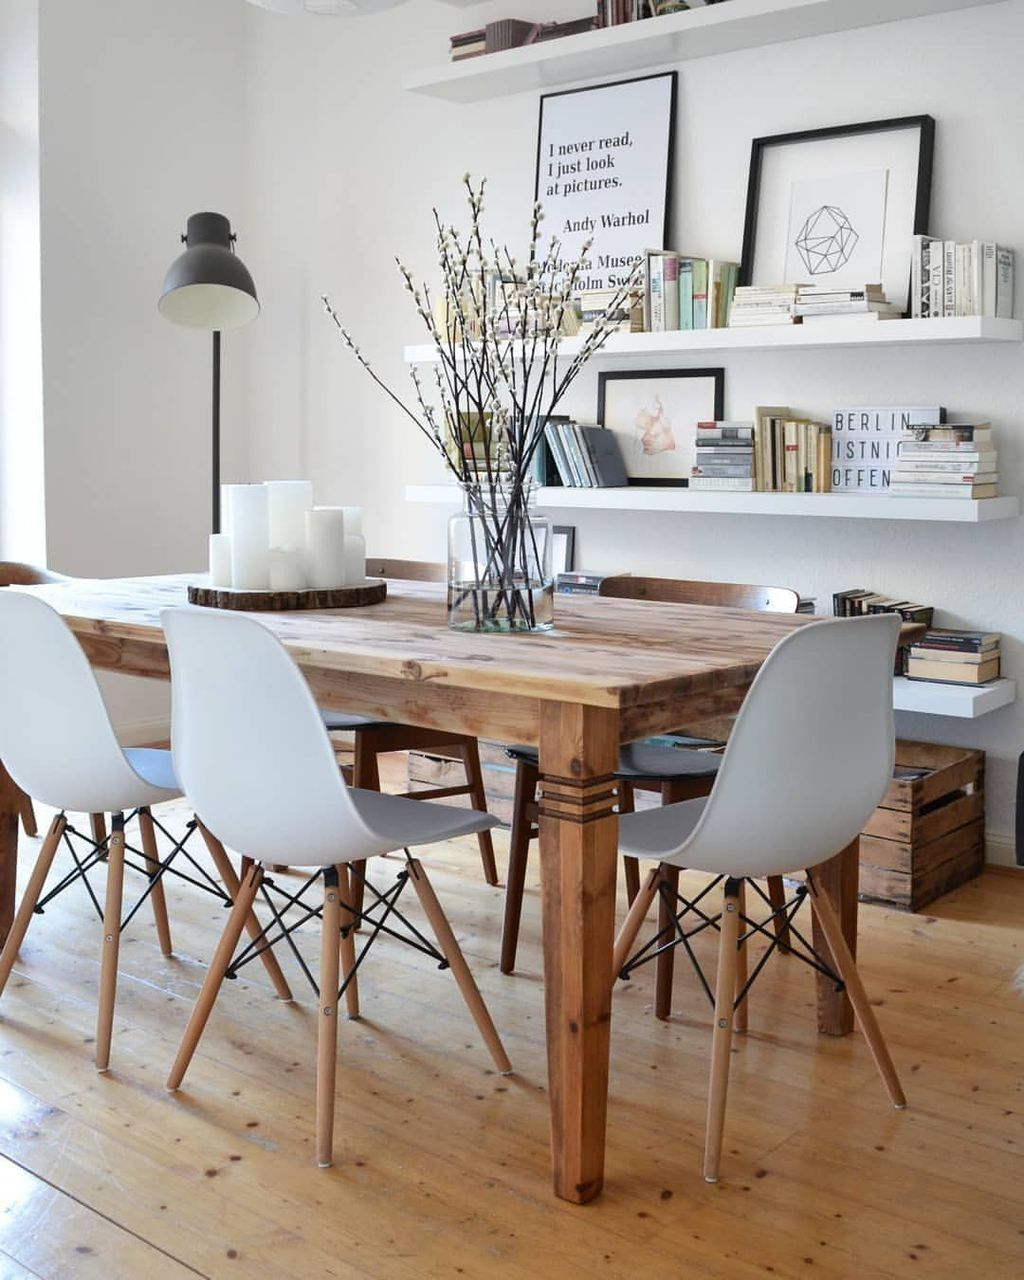 70 Modern Dining Room Ideas For 2019: 50 Beautiful Scandinavian Dining Room Design Ideas In 2019